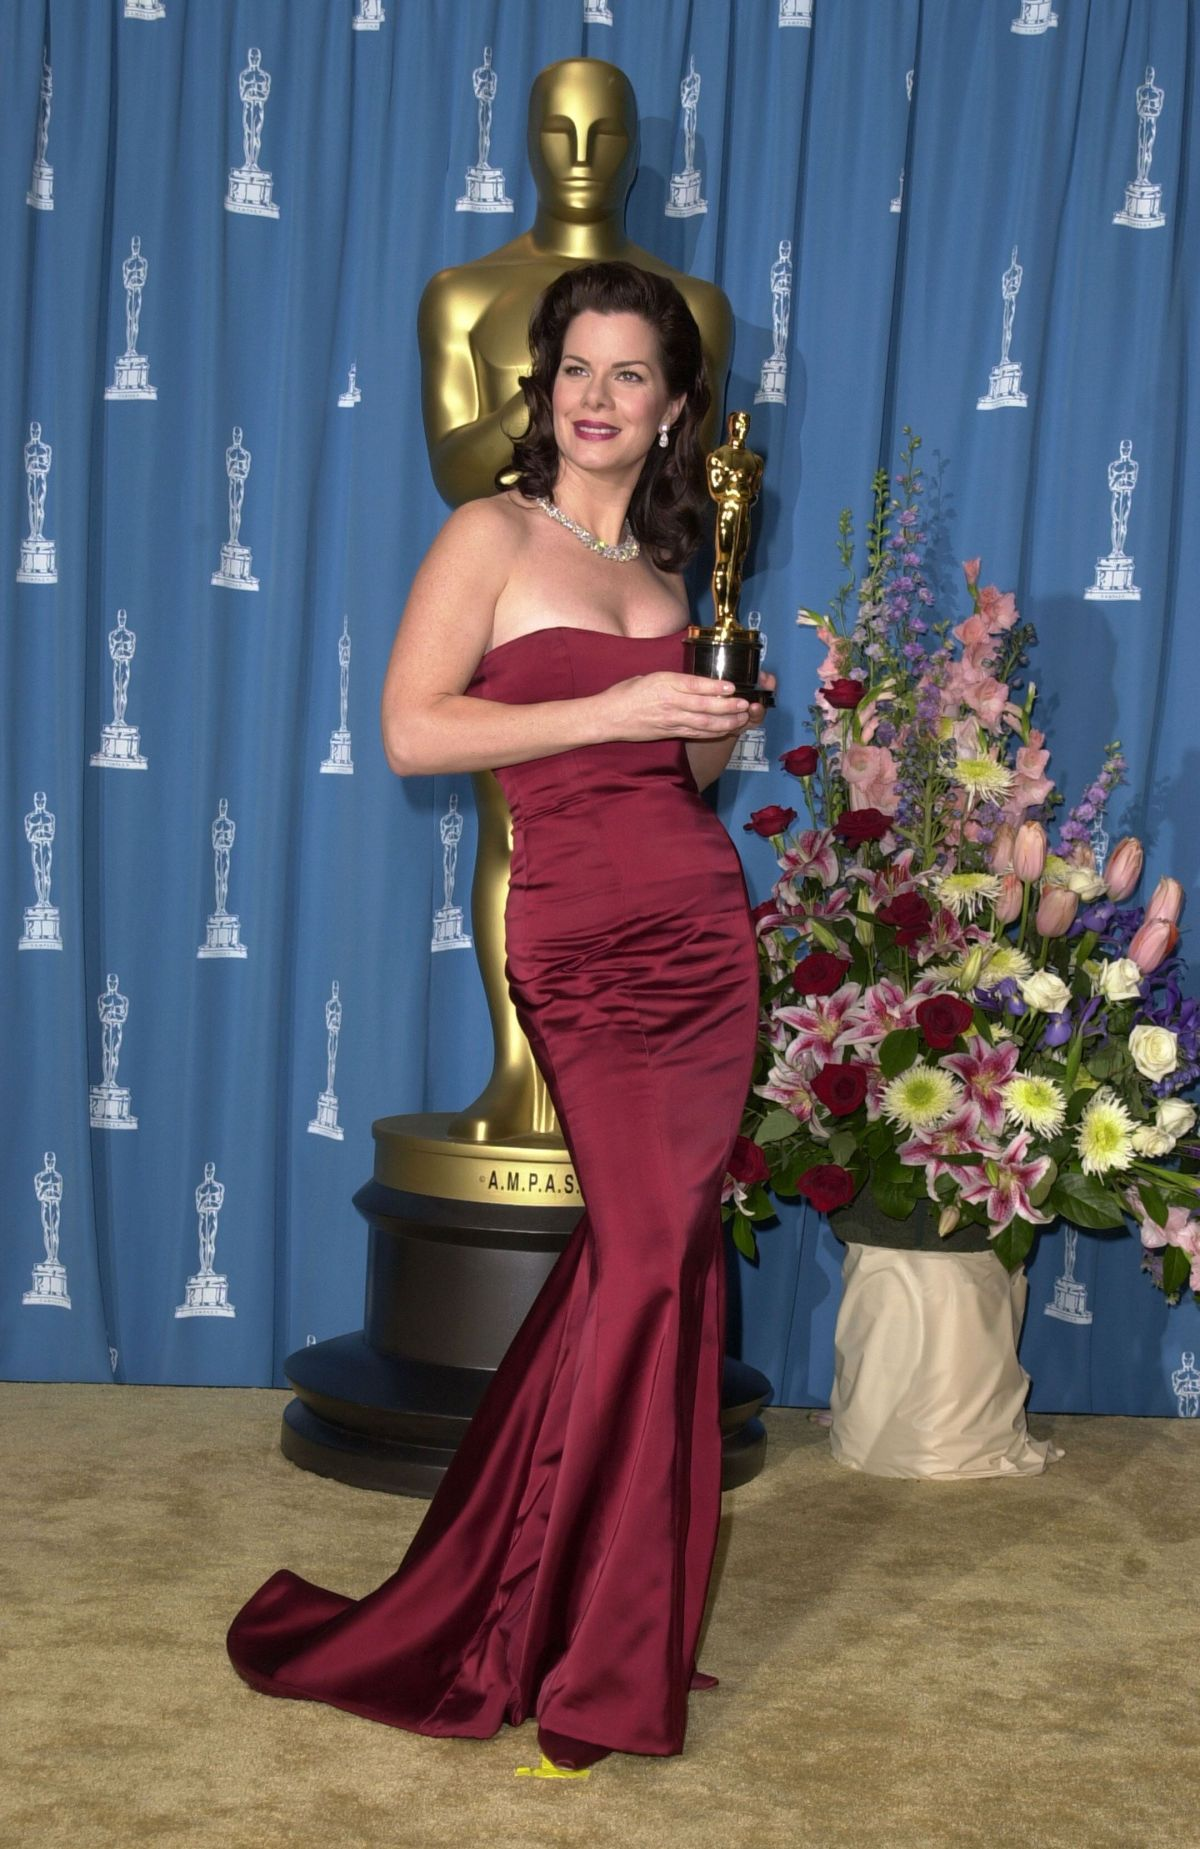 Marcia Gay Harden posing with her Oscar in